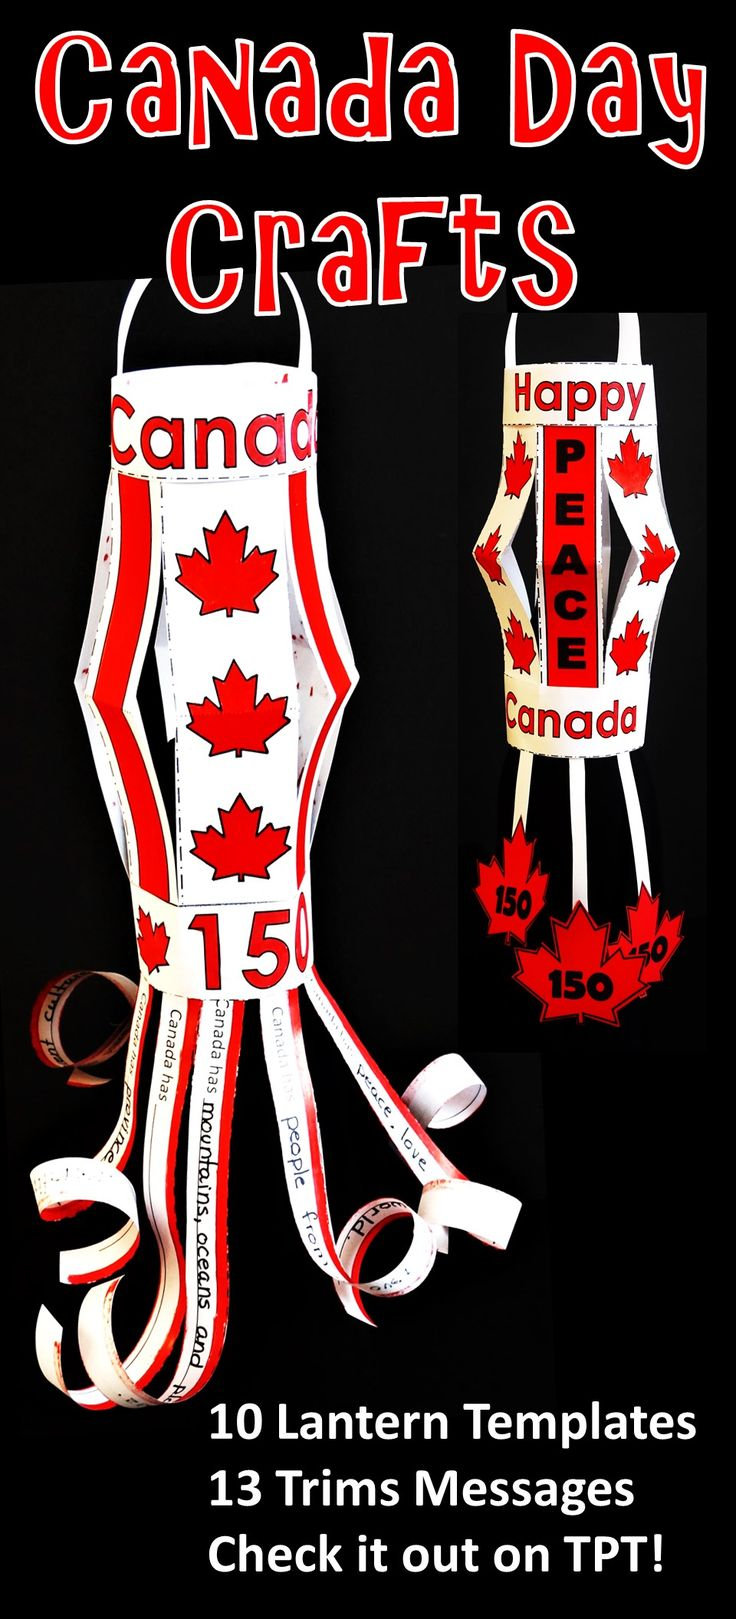 Canada Day Craft  :: Canada 150  Celebrate Canada Day with this great Canadian craft.  Use as a ceiling decoration, wind sock, kite and research project all rolled into one kid-friendly, teacher-easy Canada Day craftivity.  Templates include Canada Flag, Maple Leaves, and Canadian Anthem.  This craft is also appropriate for Victoria Day and Canada 150 Celebrations  Check out my TPT store to see everything included! Happy Canada Day!